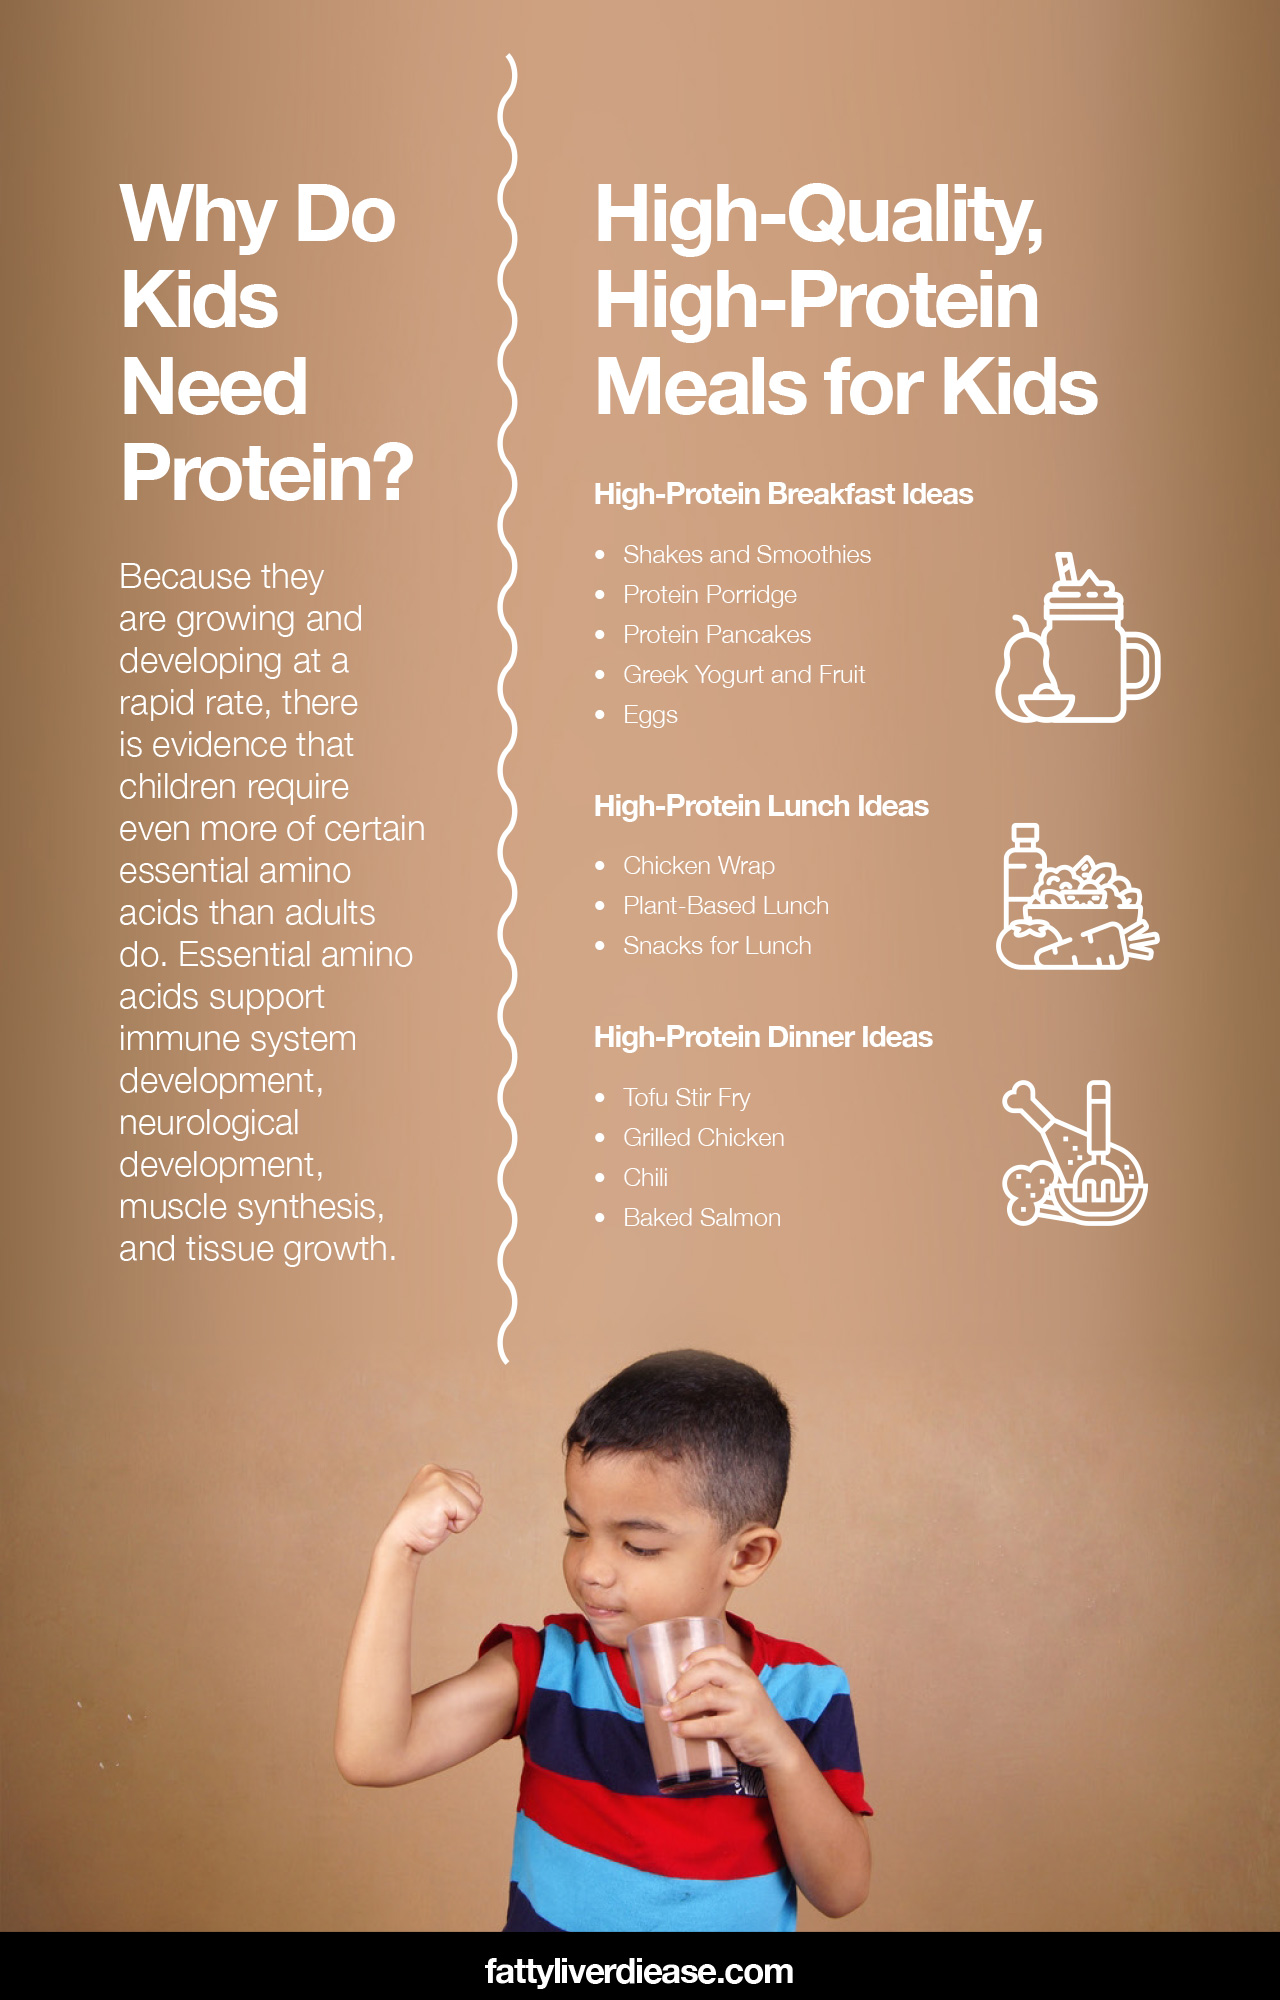 Why Do Kids Need Protein?